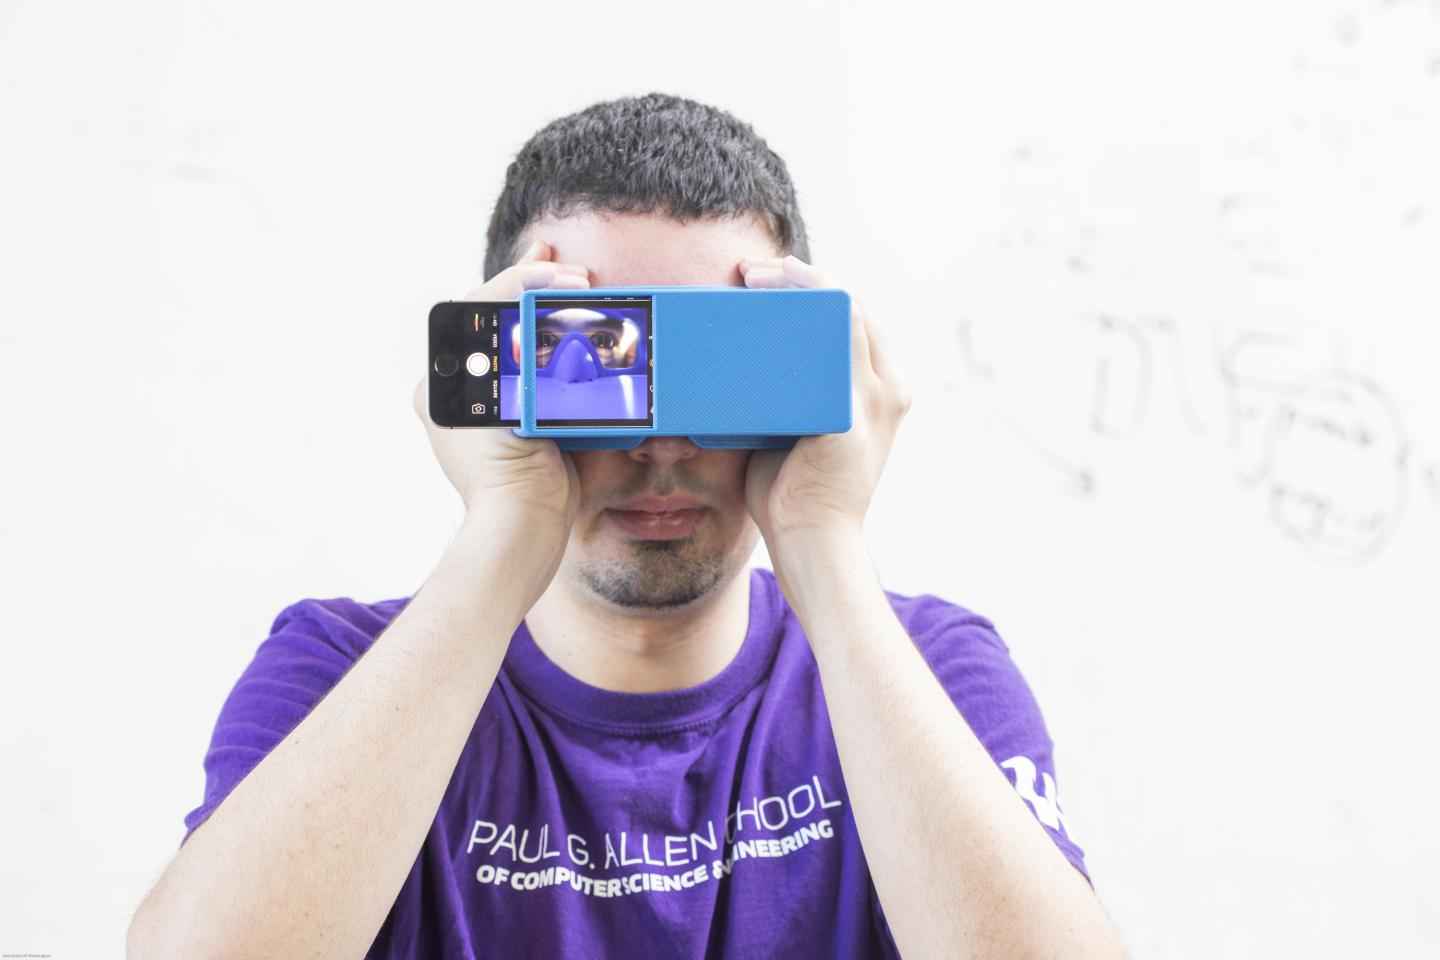 BiliScreen is a new smartphone app that can screen for pancreatic cancer by having users snap a selfie. It's shown here with a 3D printed box that helps control lighting conditions to detect signs of jaundice in a person's eye. [Dennis Wise/University of Washington]